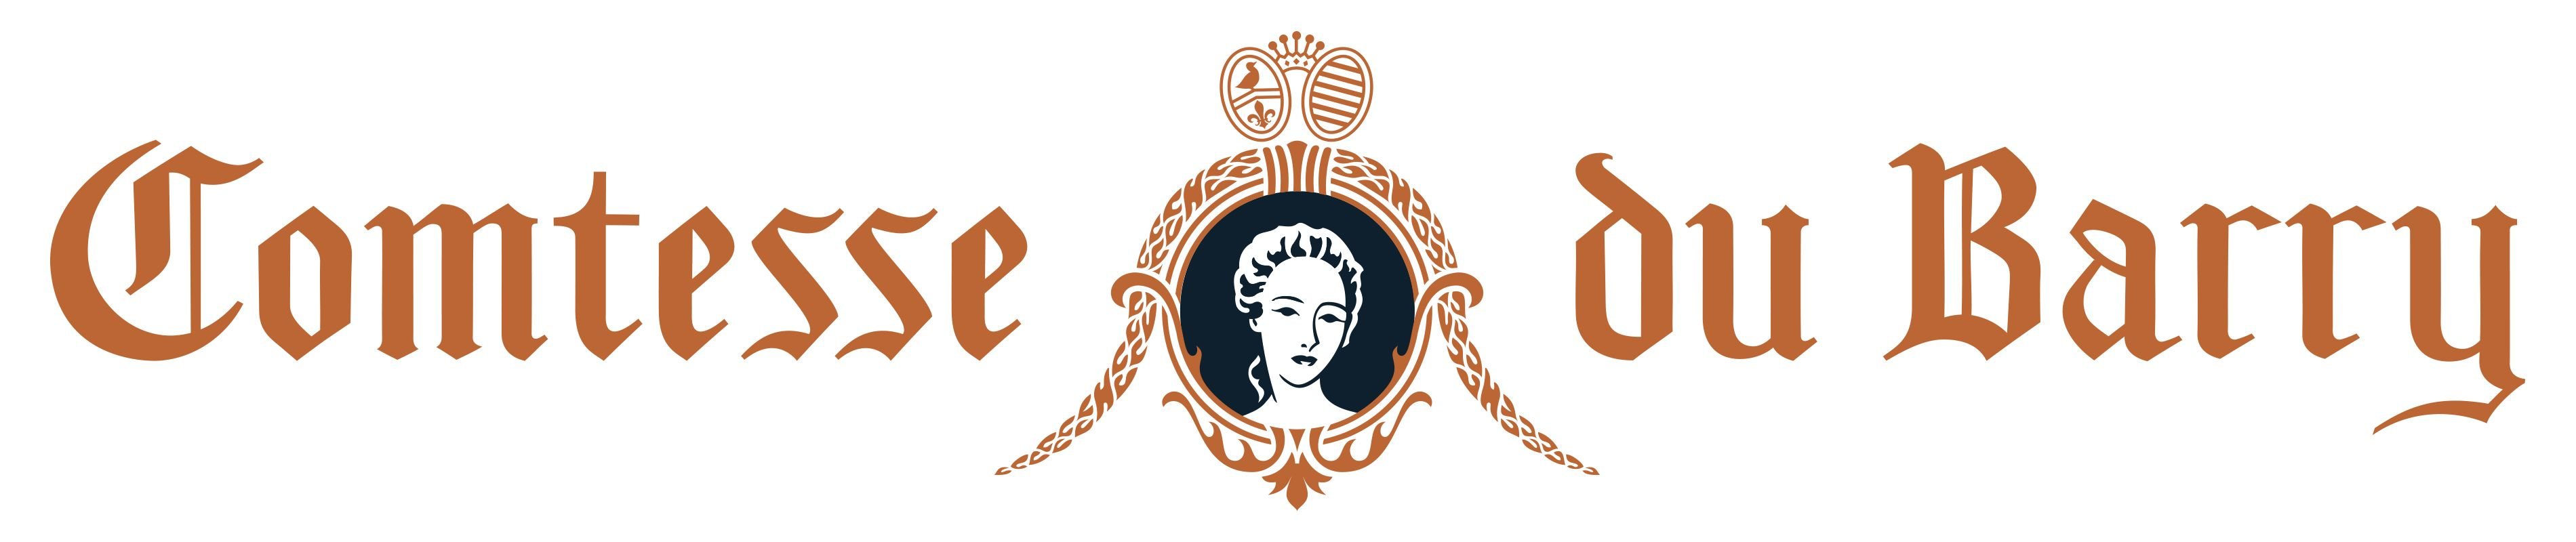 2015-logo-comtessedubarry